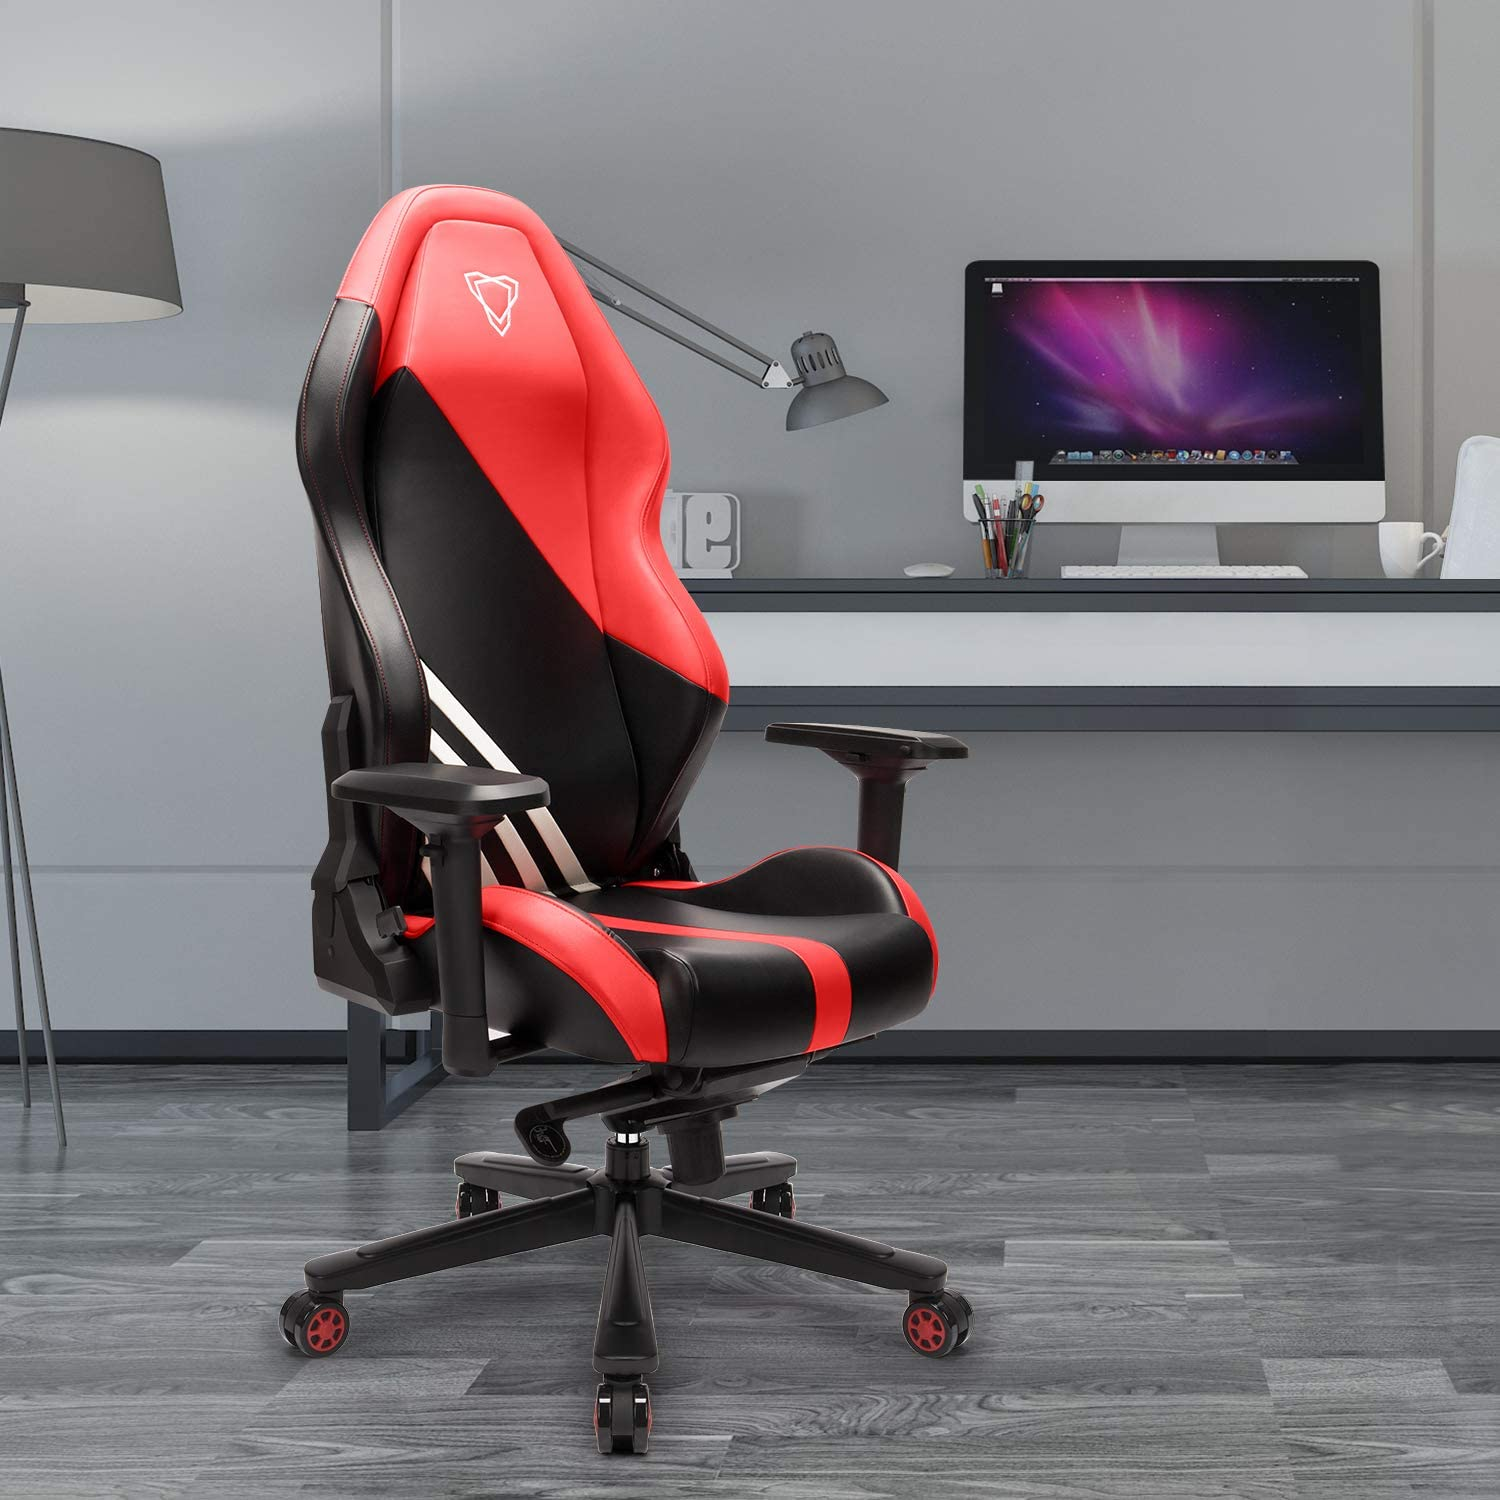 Amazon Com Furgle Office Gaming Chair Racing Style High Back Office Chair W 4d Adjustable Armrests Pu Leather Executive Ergonomic Swivel Video Game Chairs With Rocking Mode Kitchen Dining